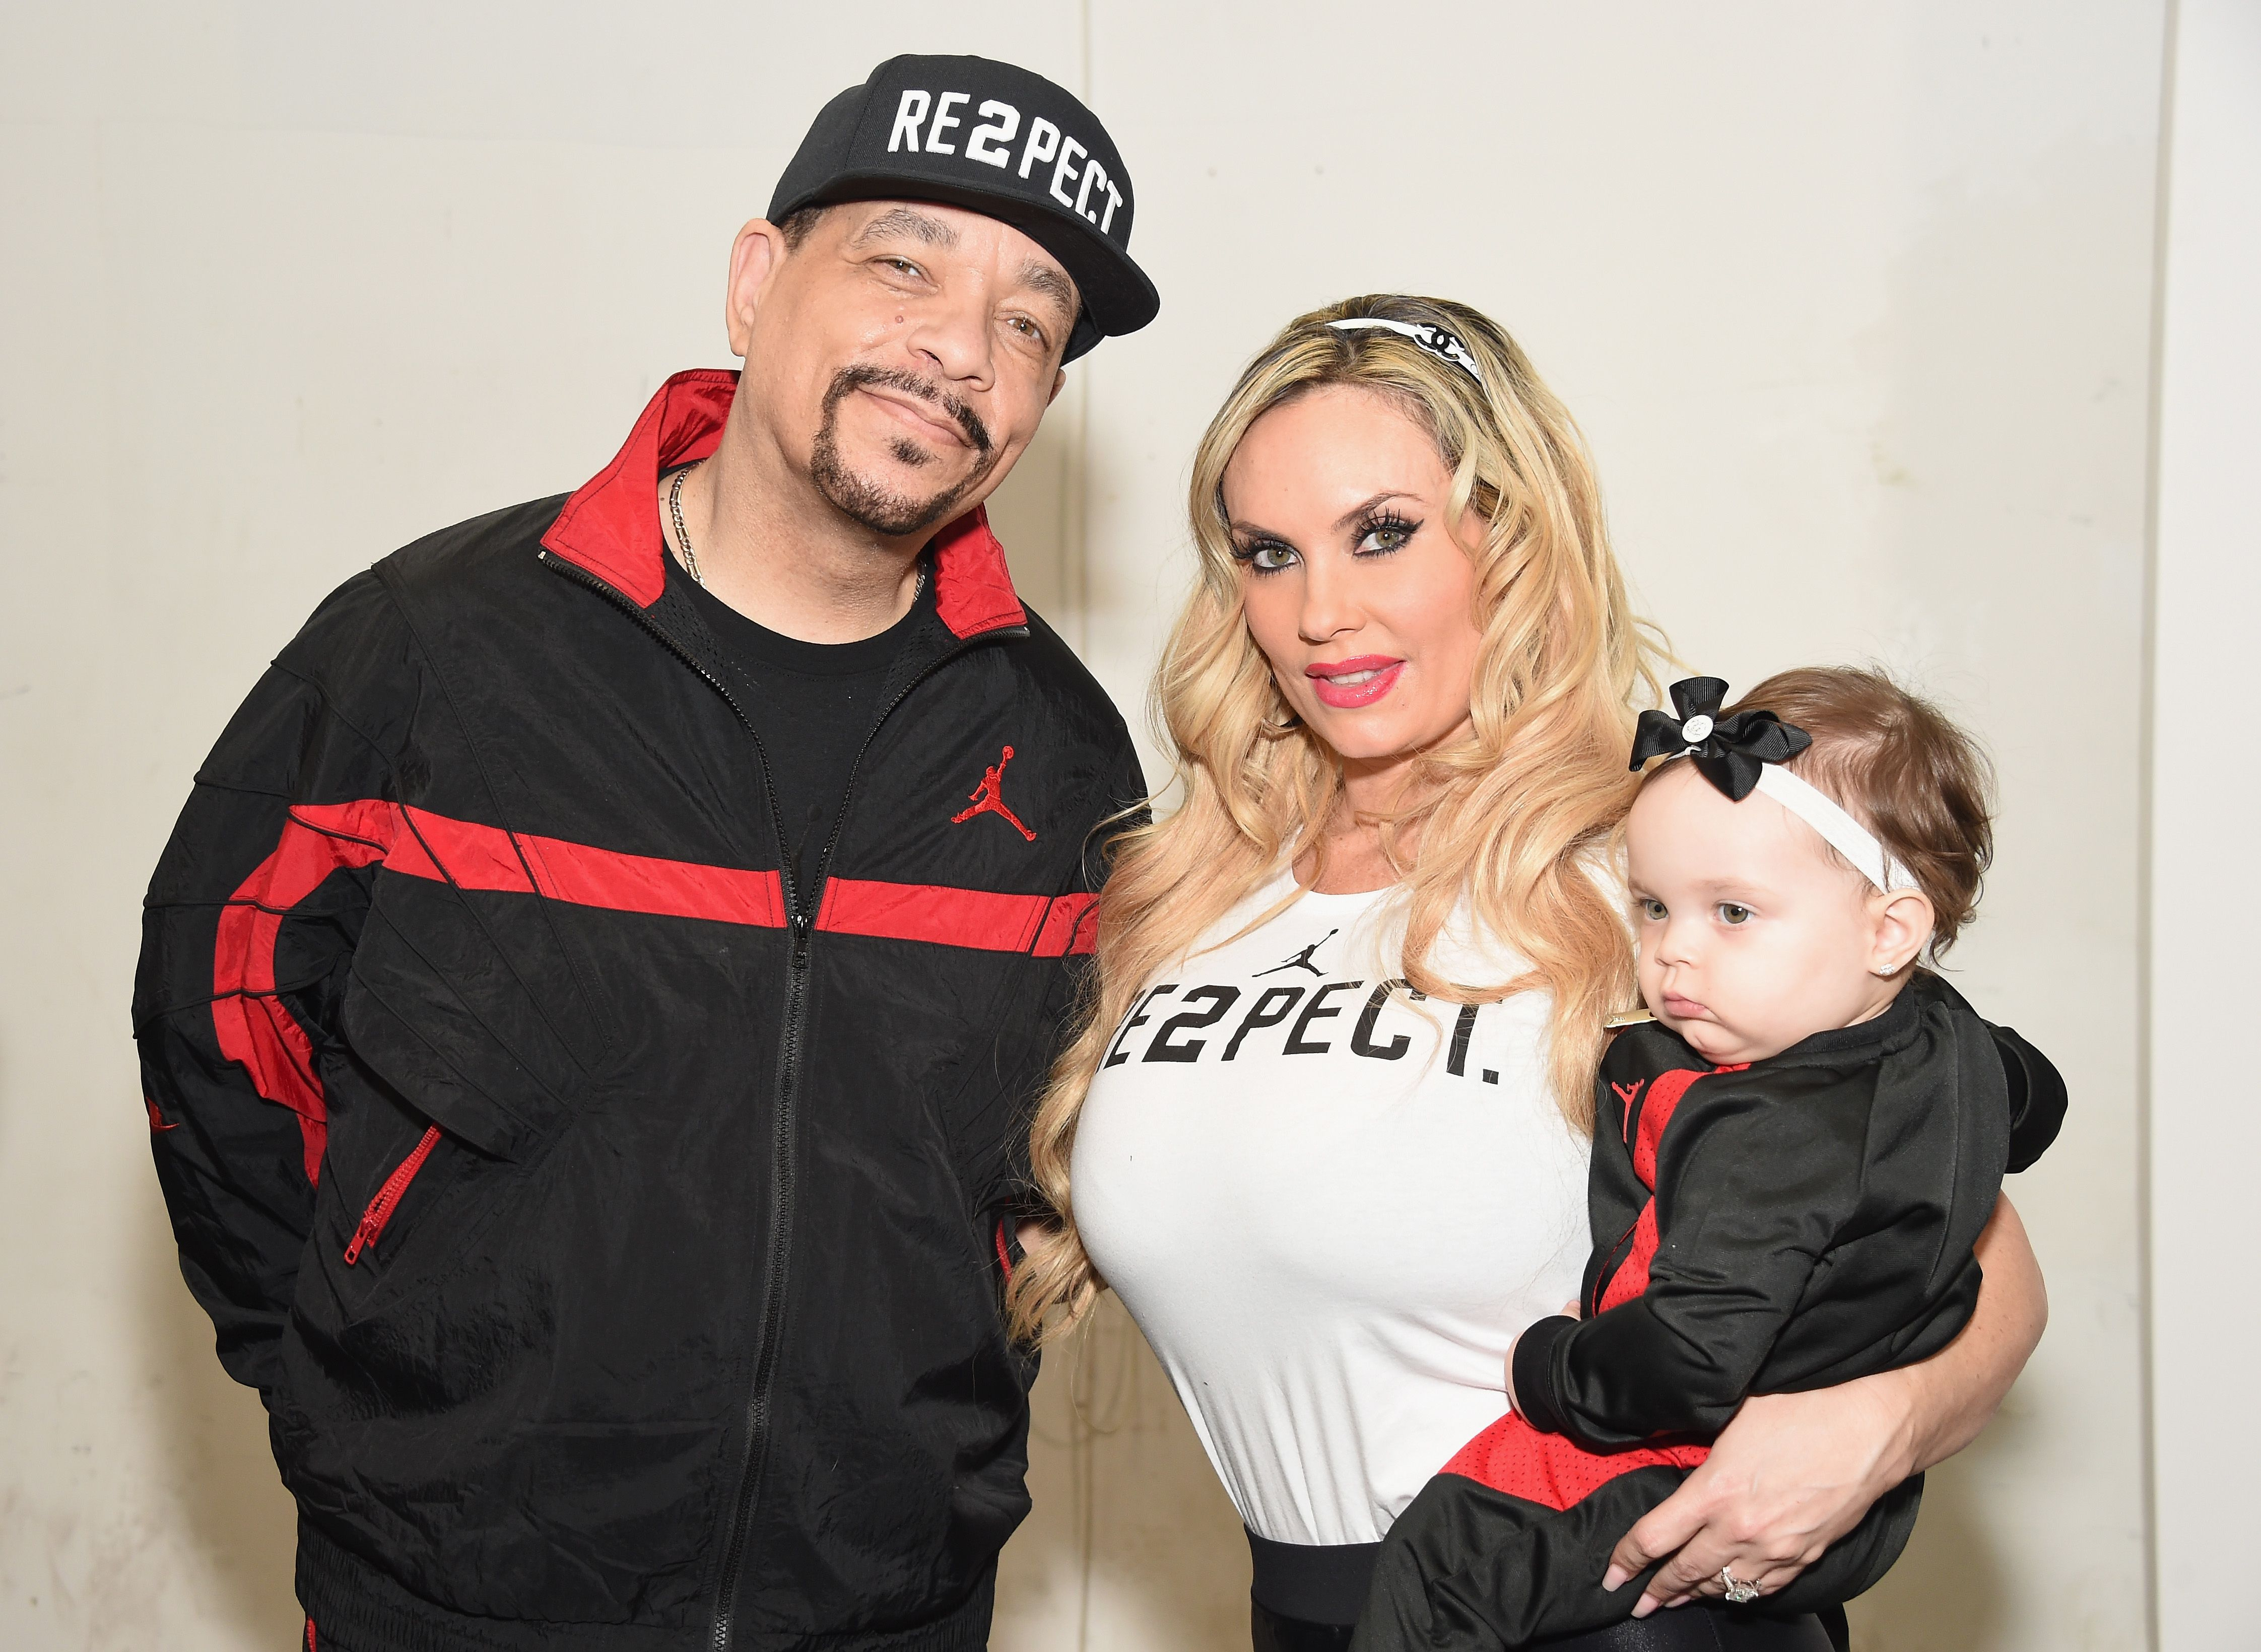 Ice-T, Coco Austin and Chanel at the Rookie USA fashion show in New York on February 15, 2017.   Photo: Getty Images